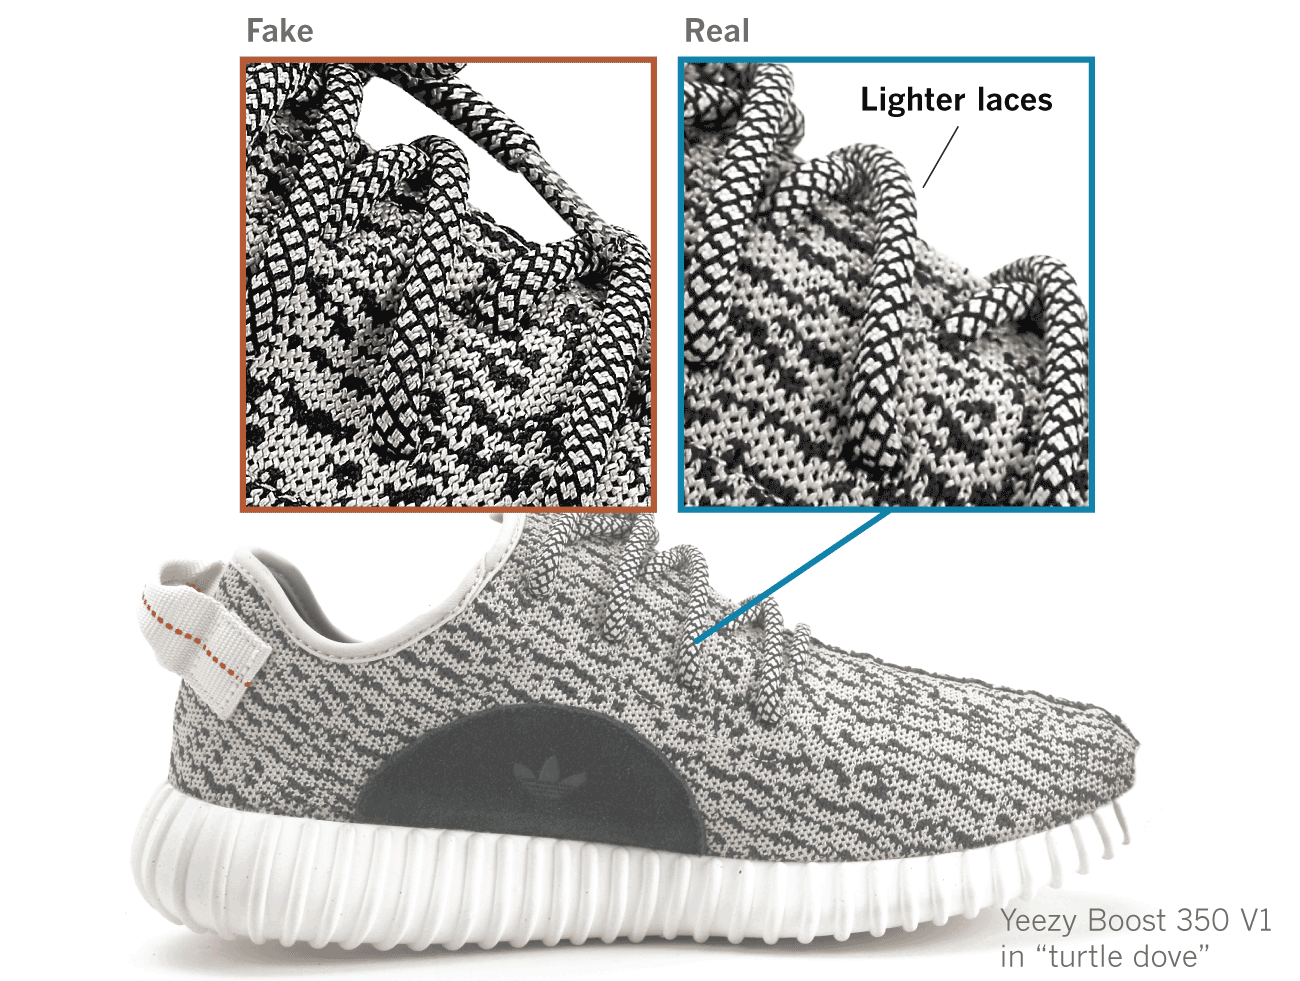 b042d163db95d Replicating the highly coveted and commercially successful Adidas Yeezy has  become so sophisticated that even some of the most astute fans can t tell  the ...